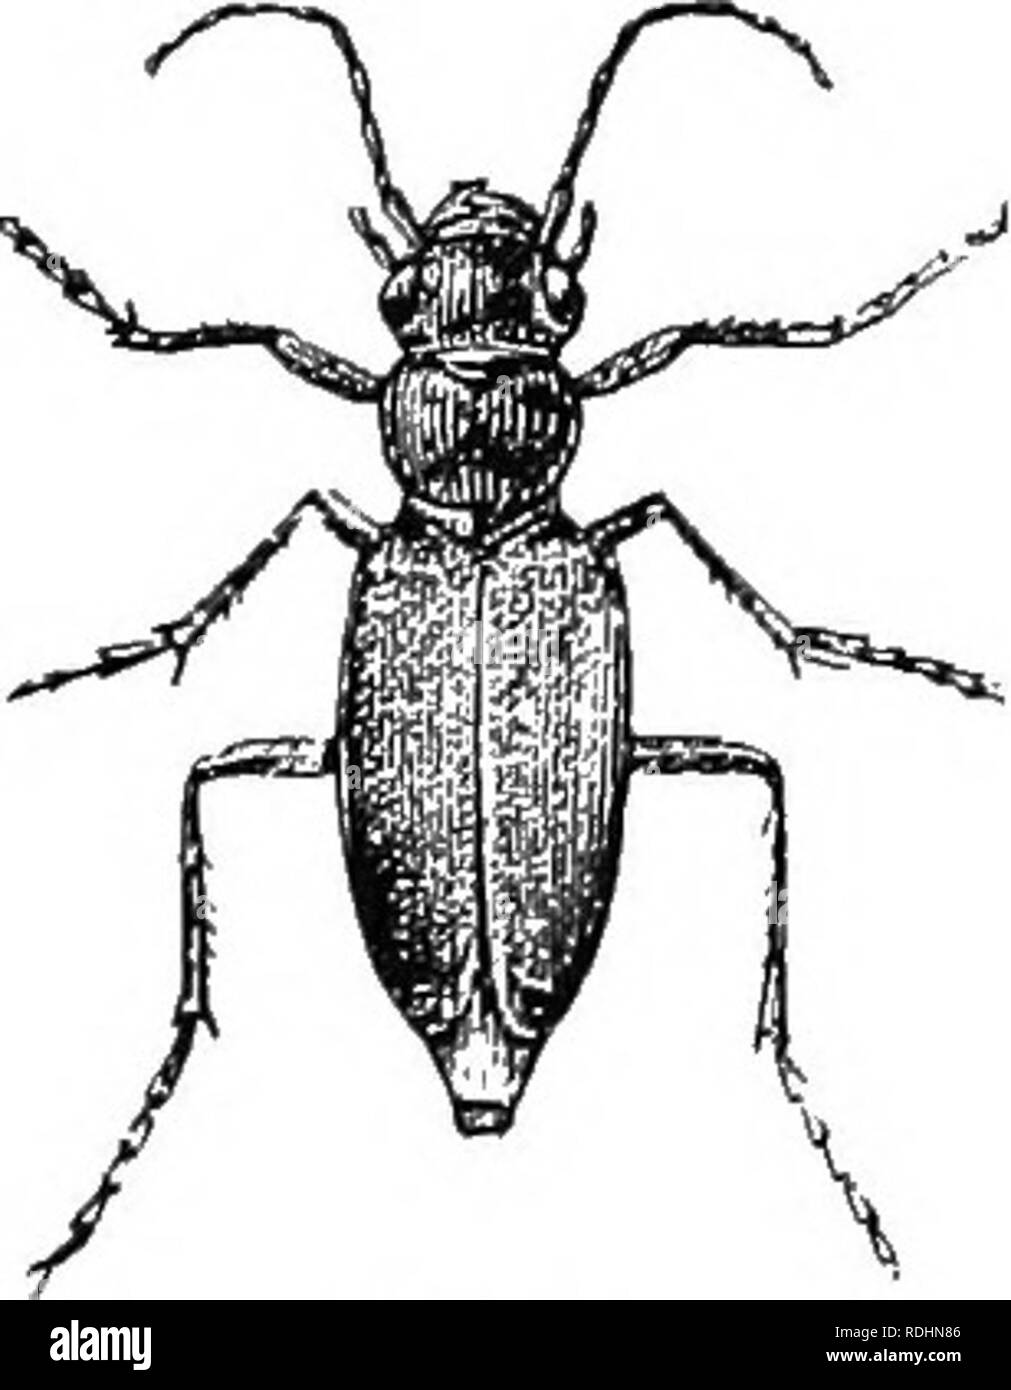 June Beetles Black and White Stock Photos & Images - Alamy